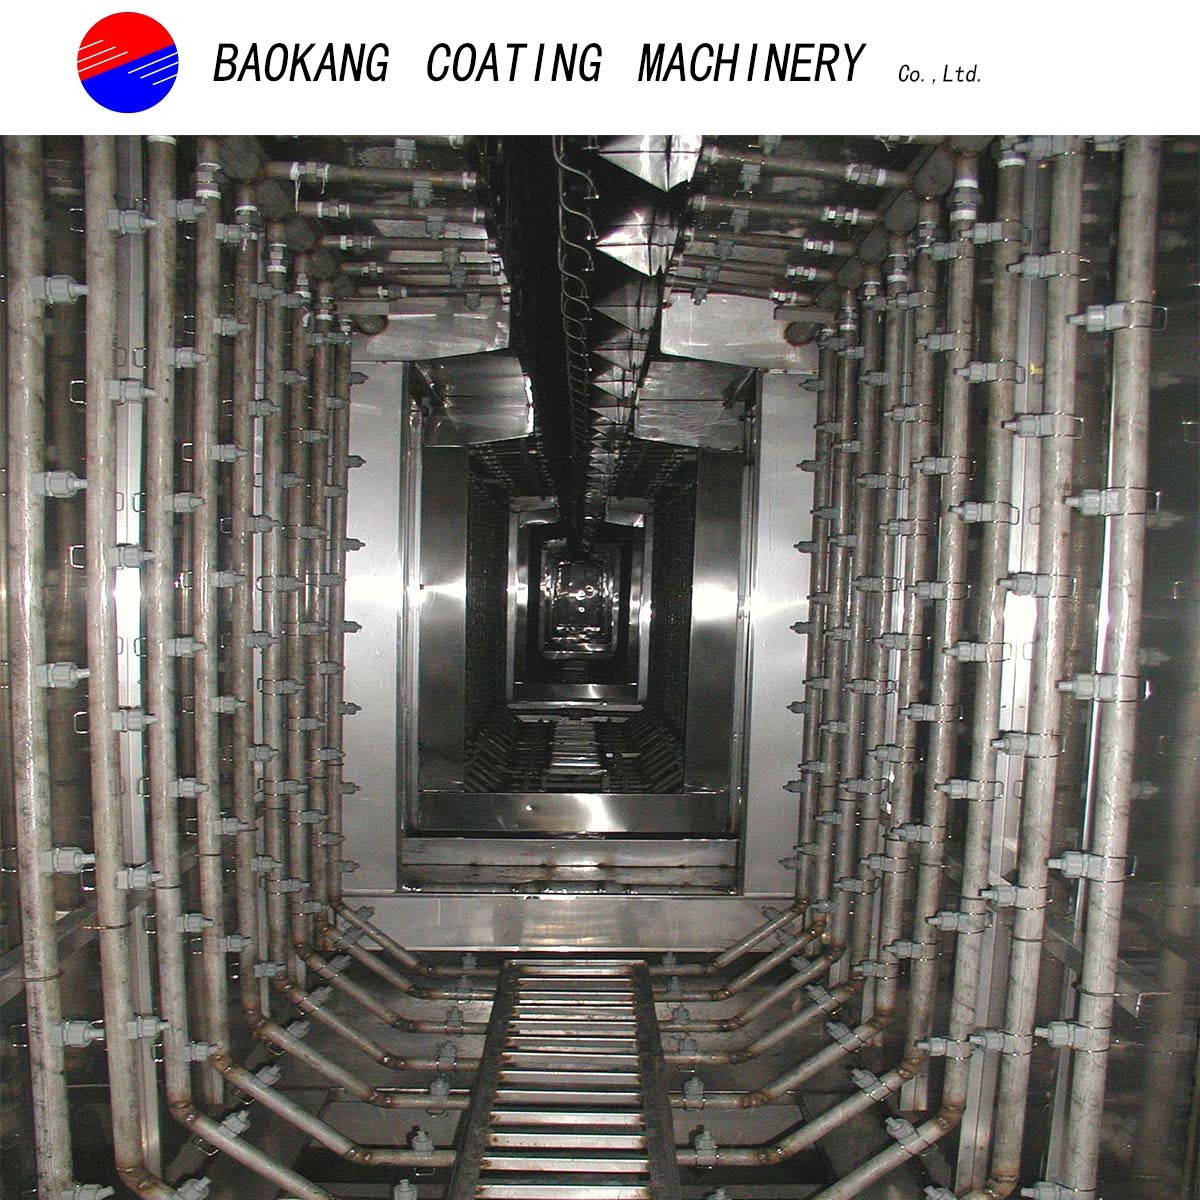 Automatic Spraying Pre-Treatment for Powder Coating